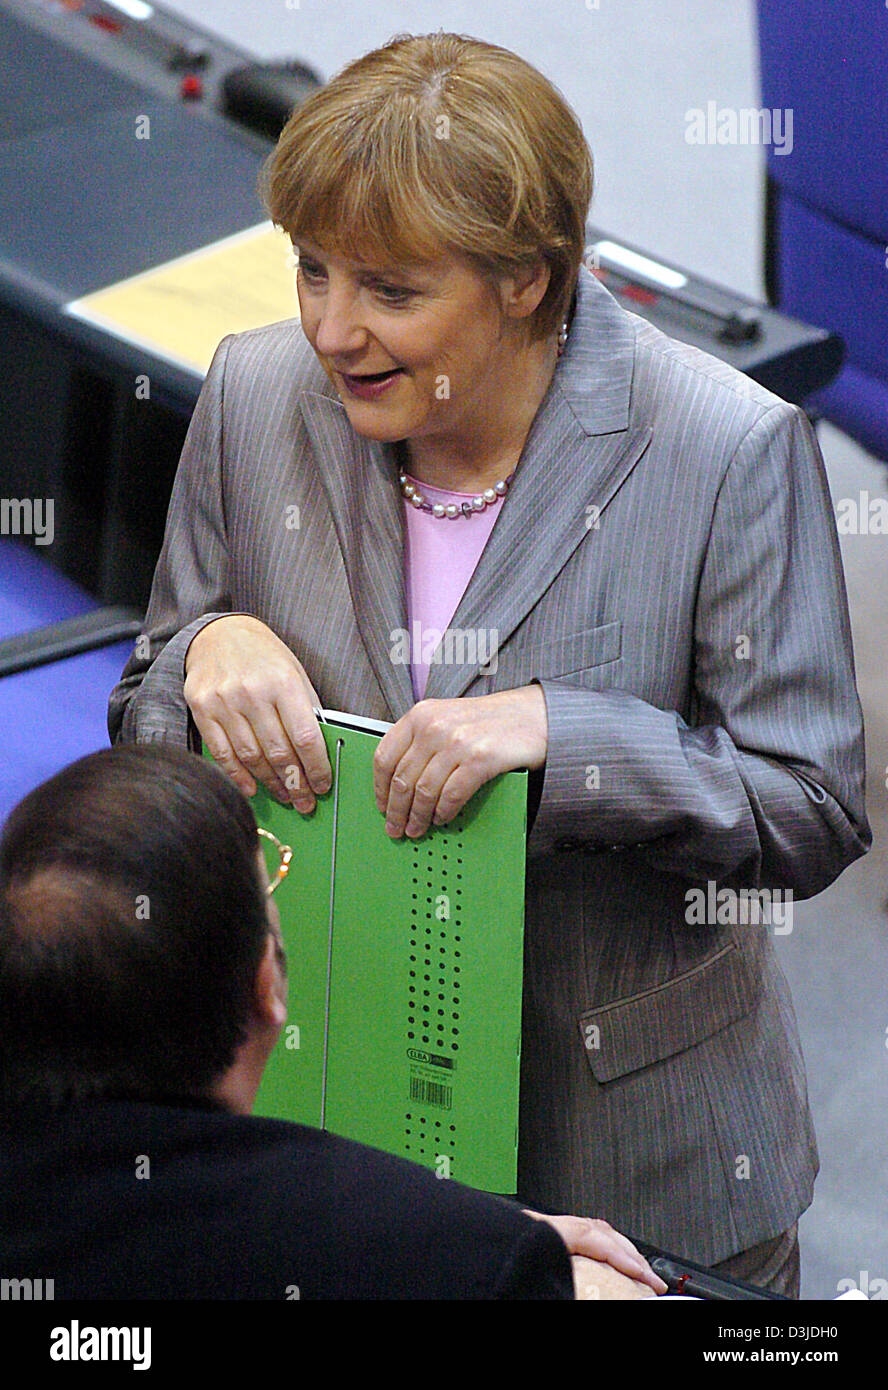 (dpa) - Angela Merkel, Chairwoman of the CDU, talks to a member of her fraction at the German Bundestag parliament in Berlin, 12 May 2005. The lower house debated the European Union constitution in today's parliamentary session. Stock Photo